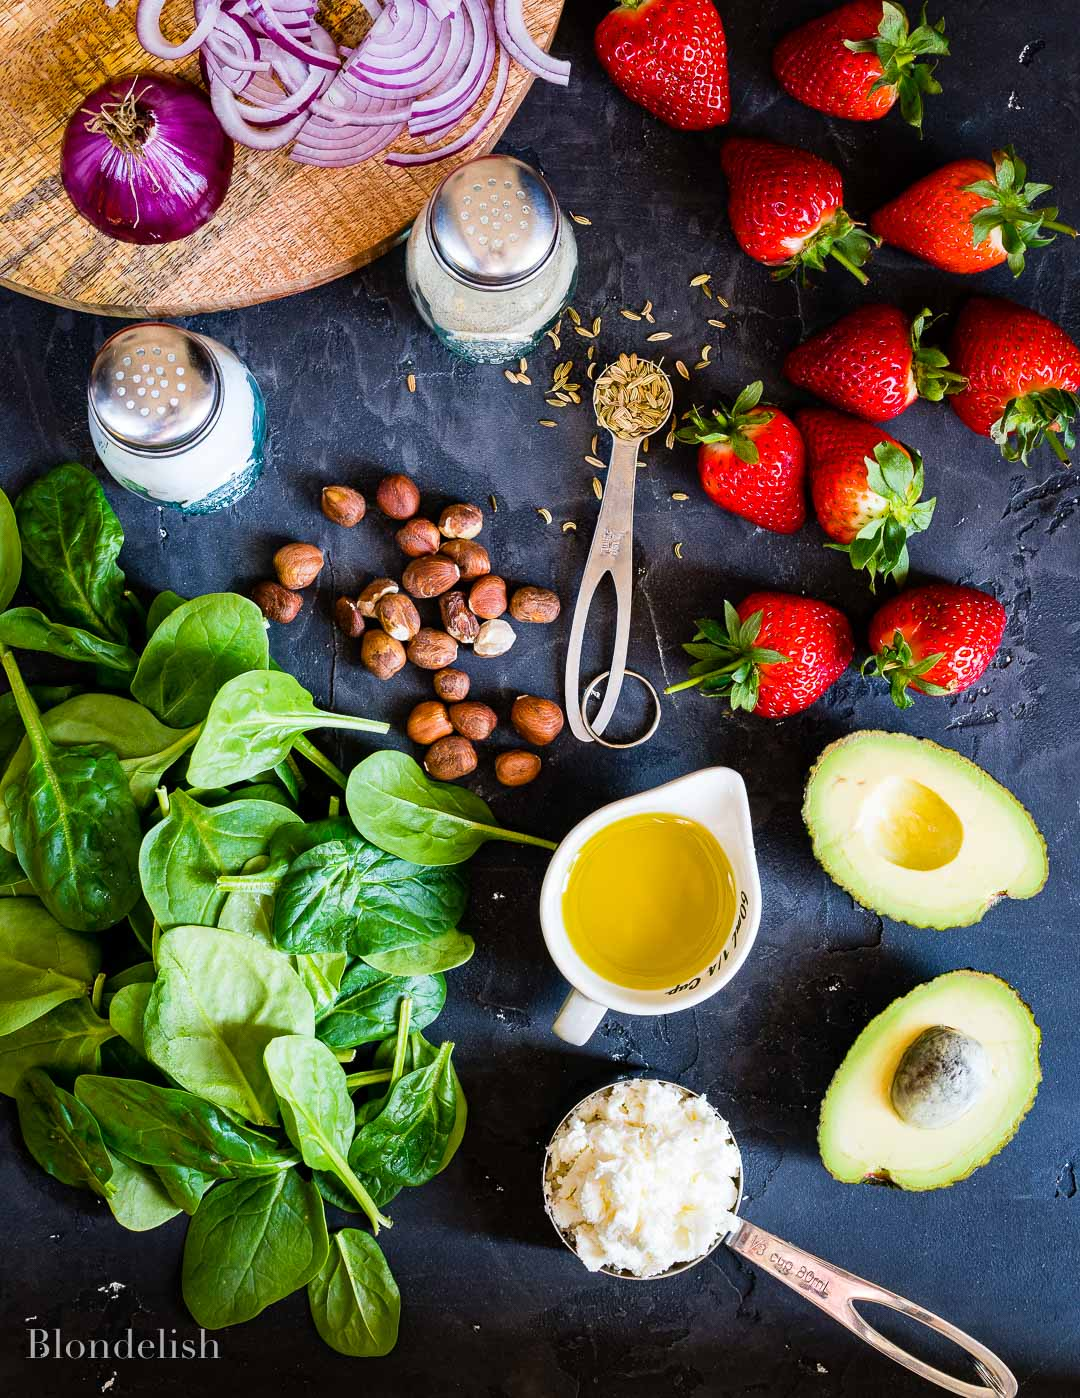 Best Strawberry and Avocado Chicken Salad Recipe - Chicken Salad Ingredients